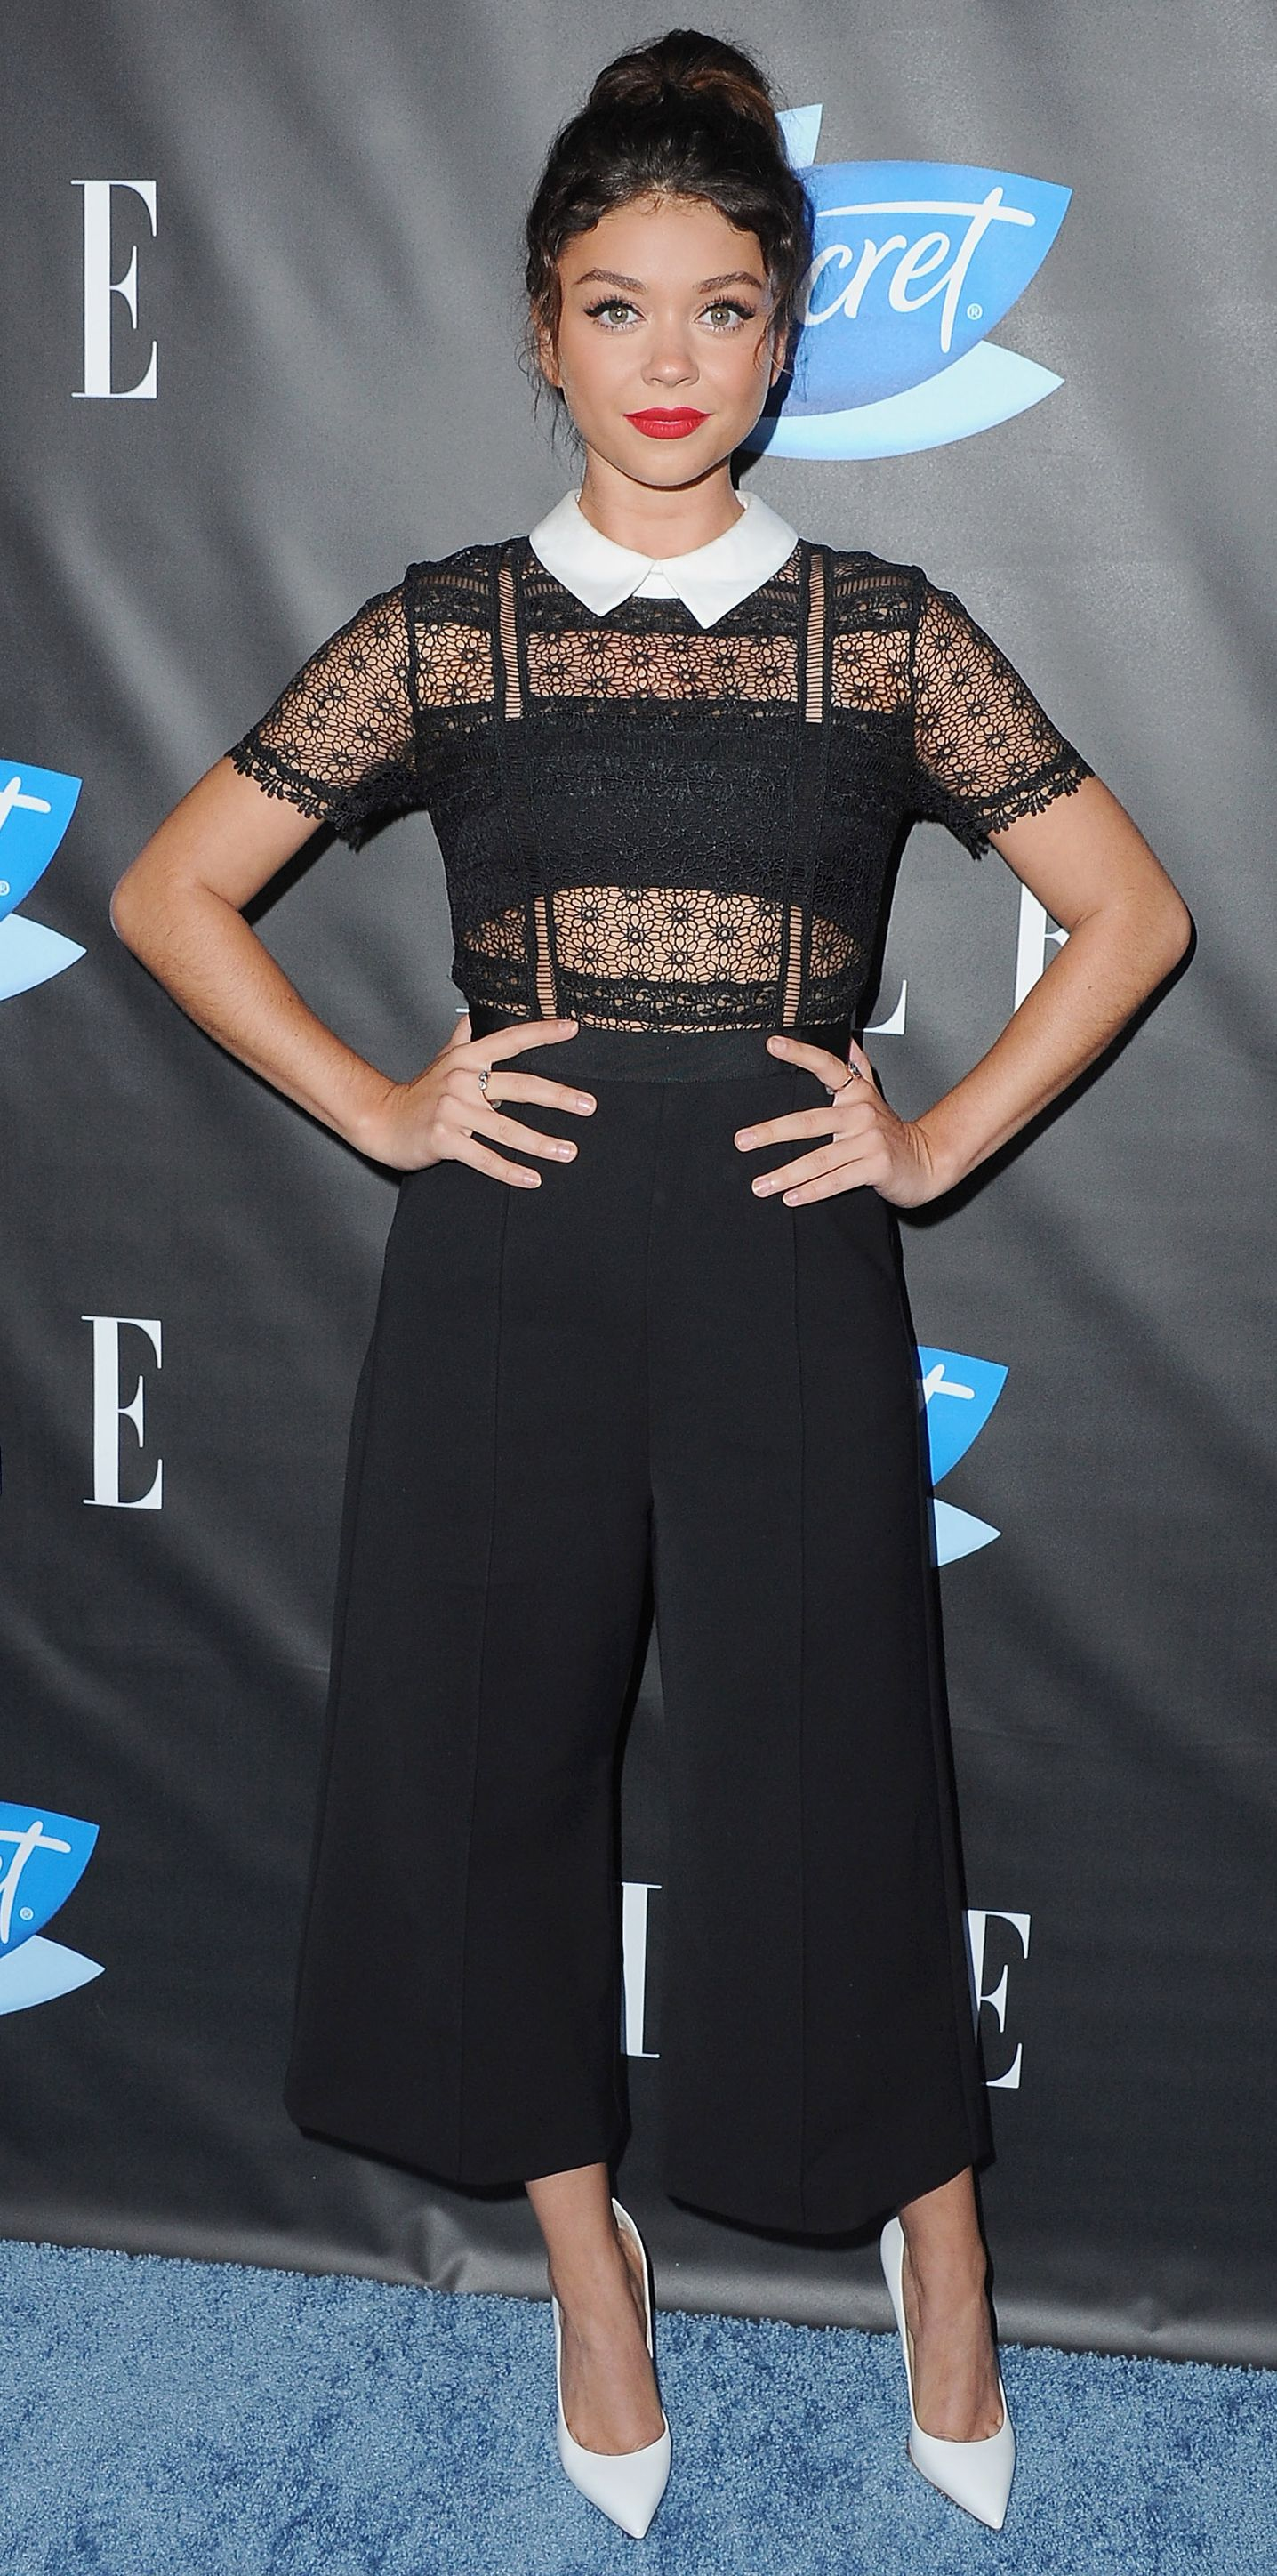 d2ef6ede951 Sarah Hyland in a sleek jumpsuit that featured a sheer black lace bodice